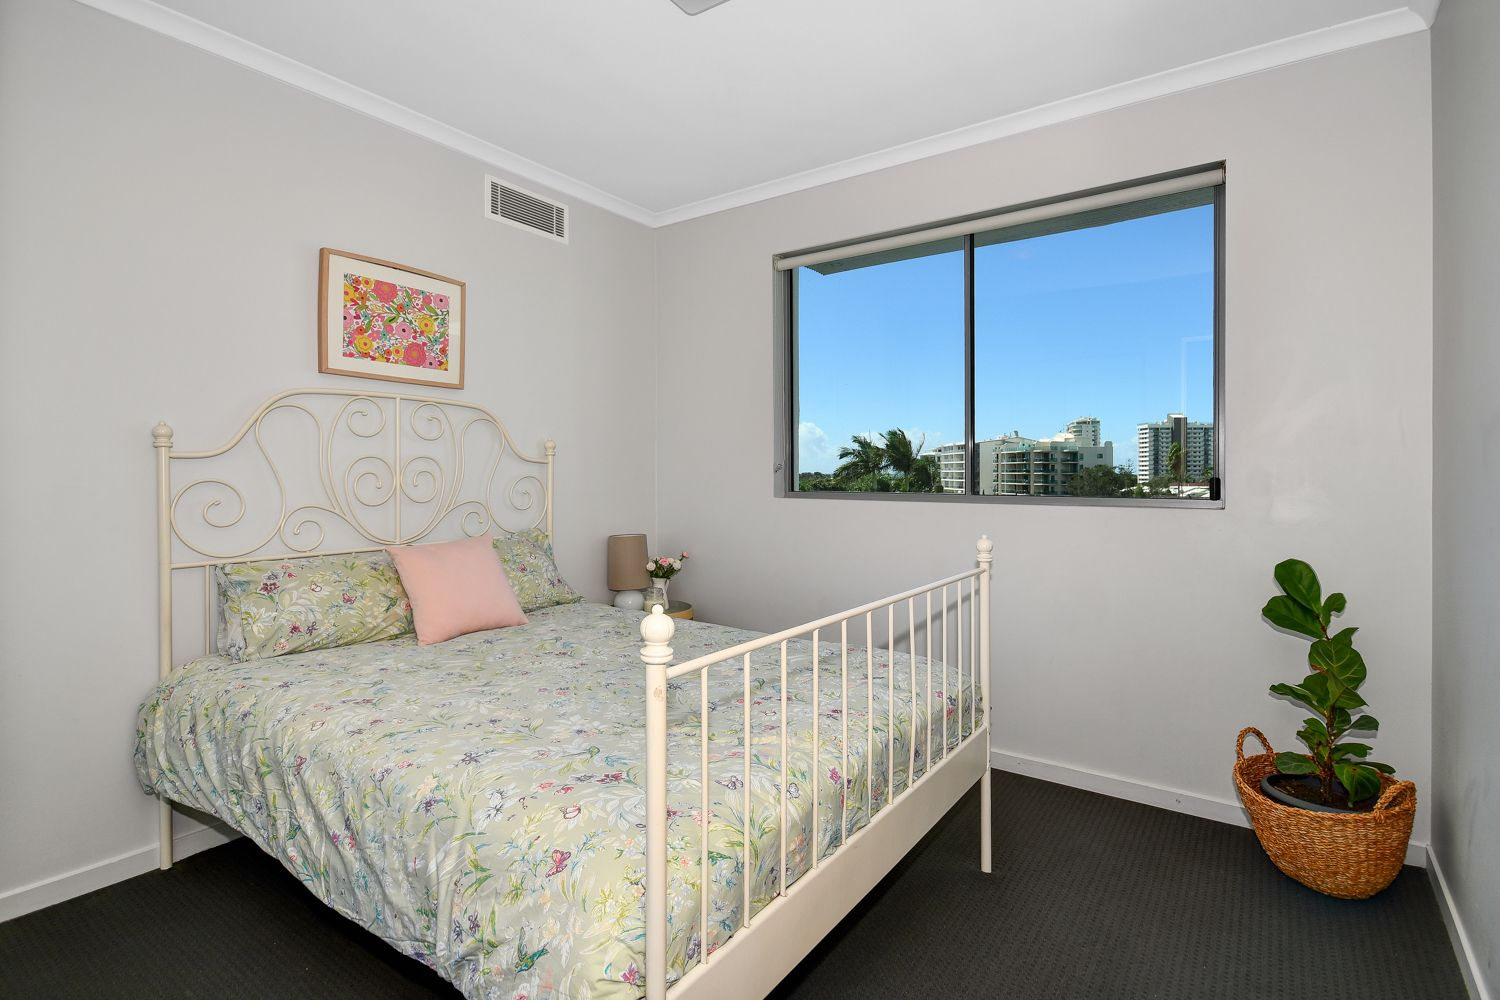 Real Estate For Sale - 15/21 The Esplanade - Cotton Tree , QLD